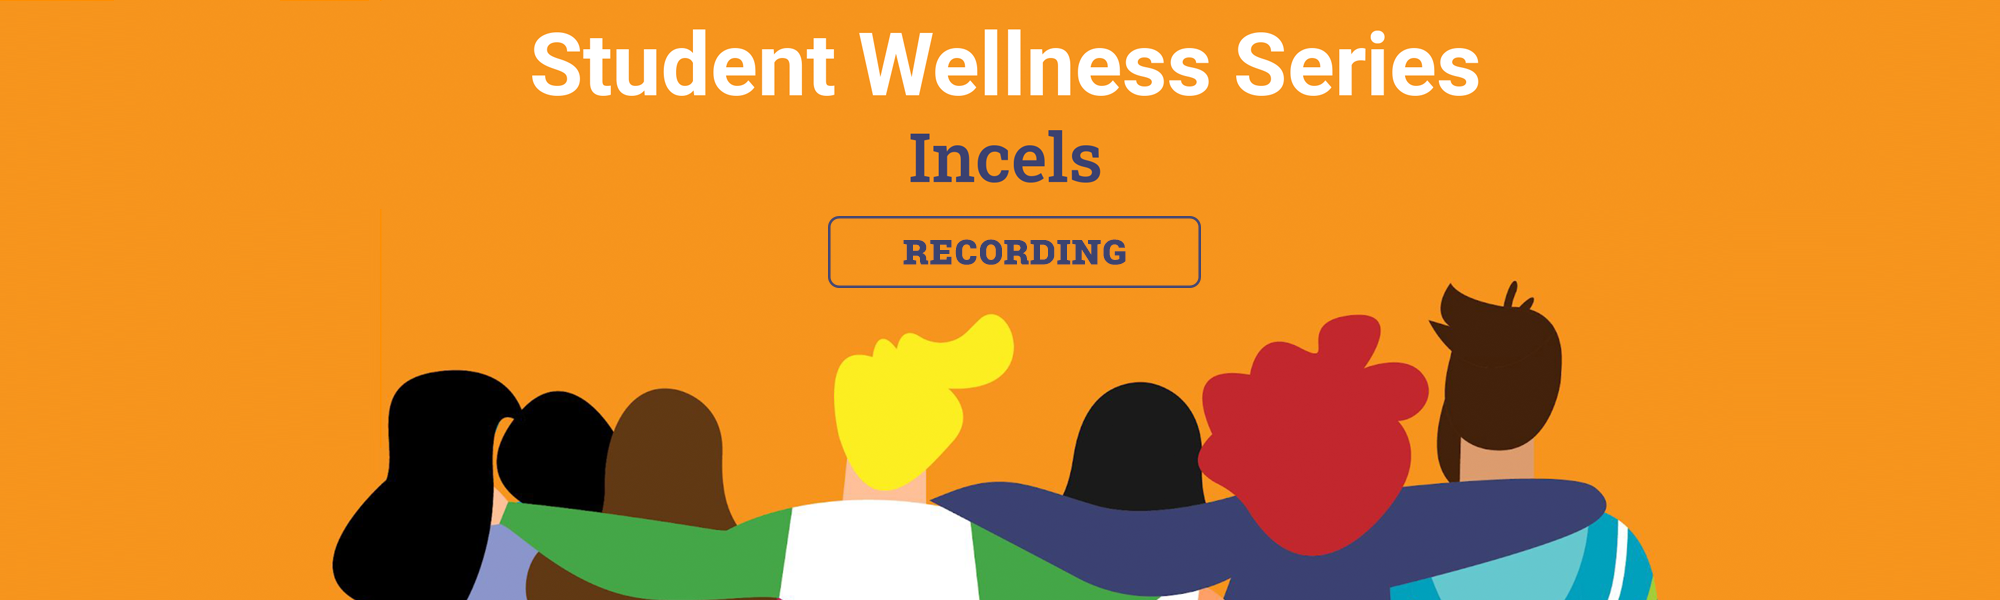 Student Wellness Series - Incels Recording